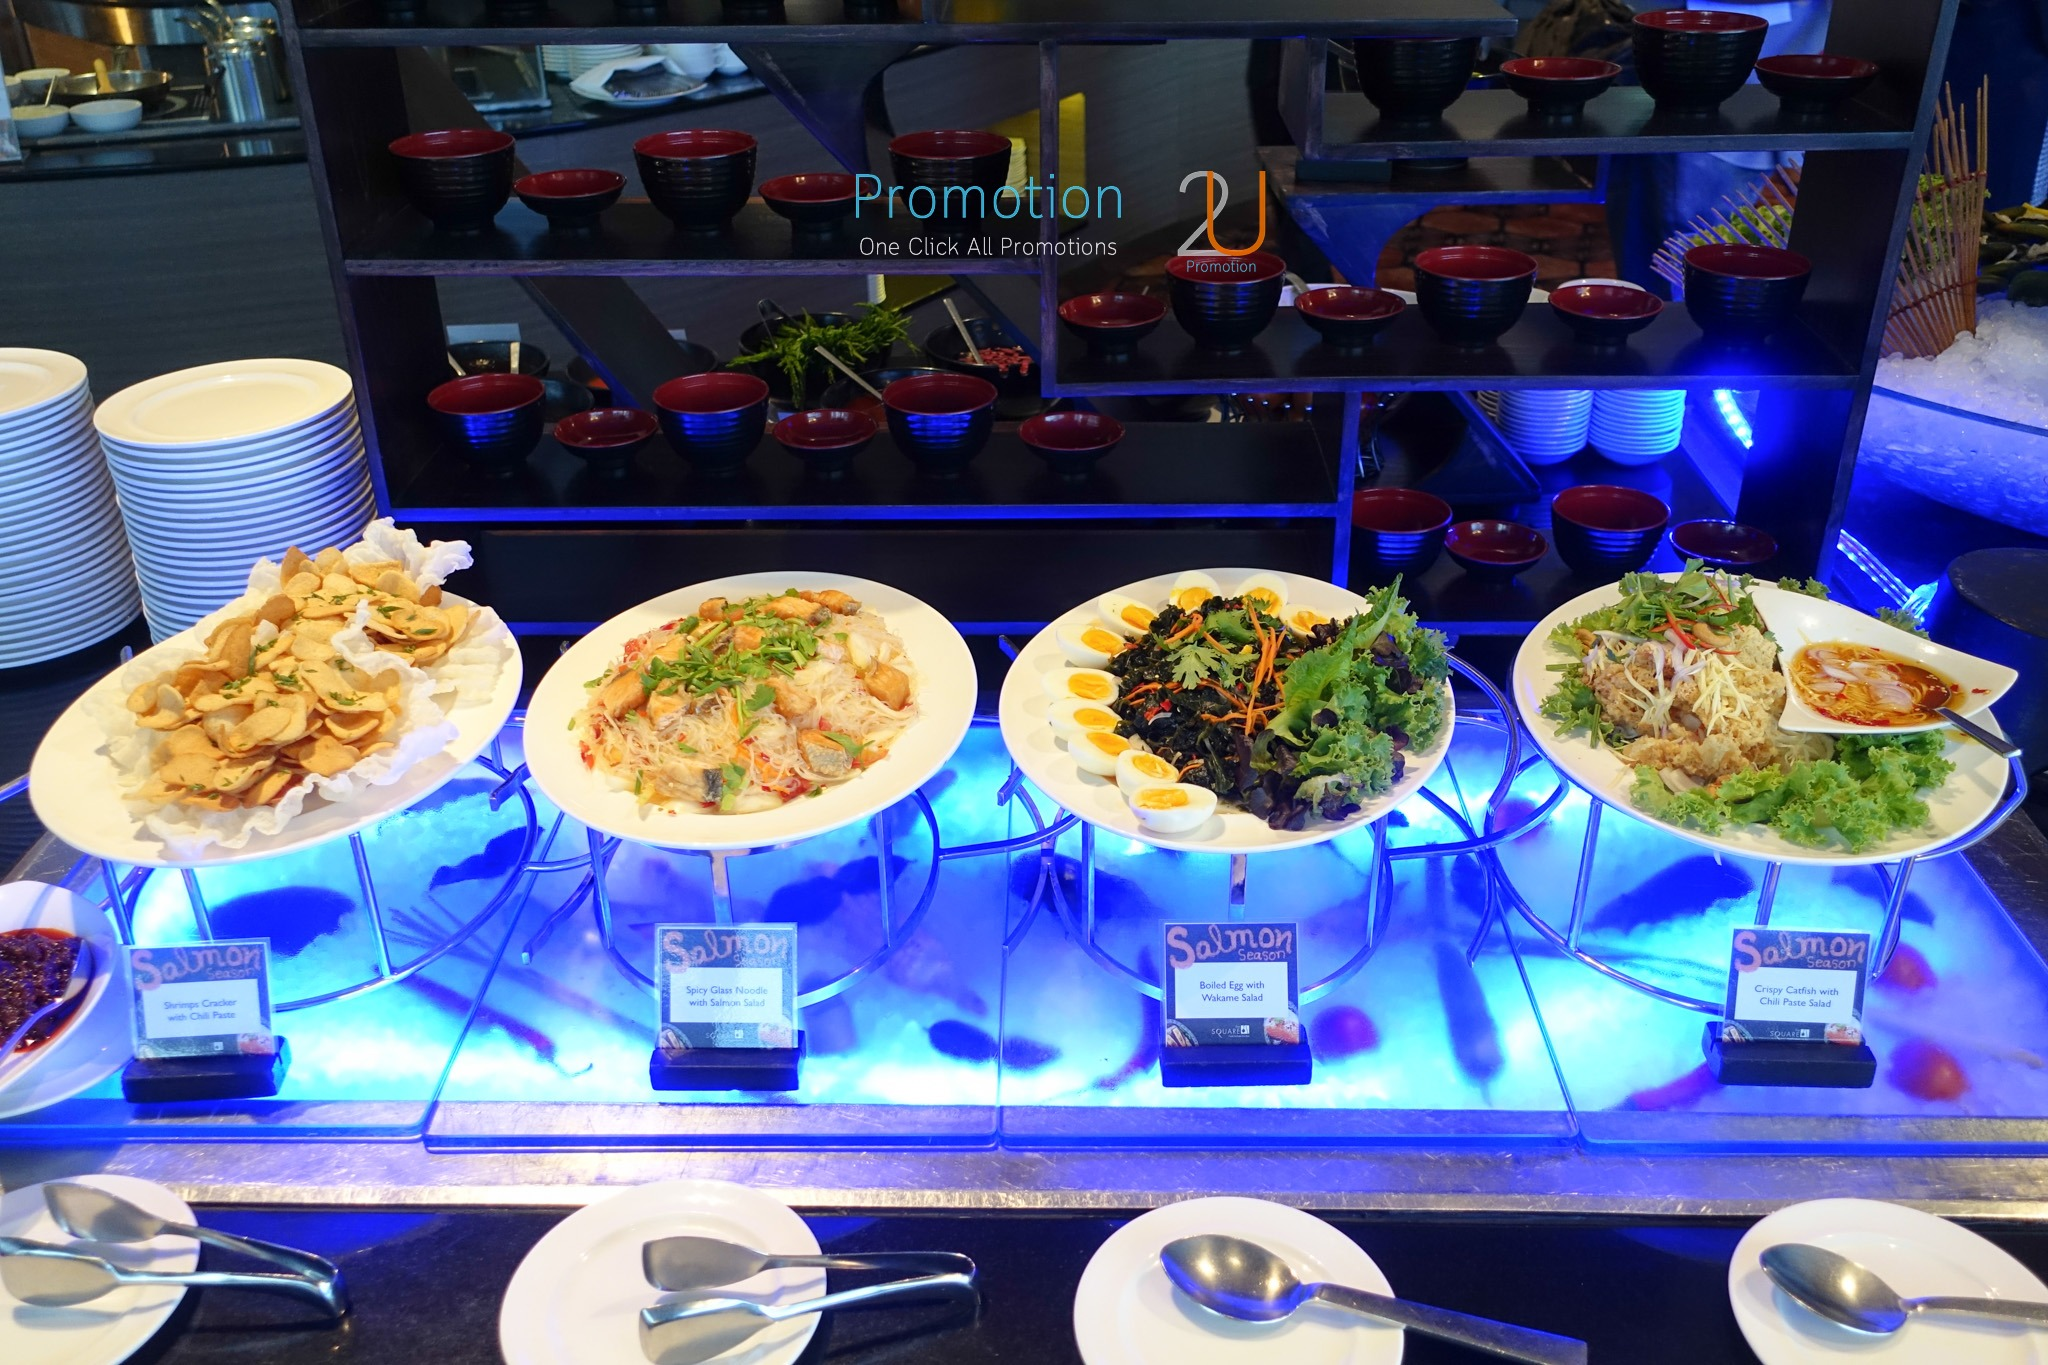 3Promotiion-Buffet-Come-2-pay-1-at-The--Squaer-Novotel-Pleonjit-Bangkok